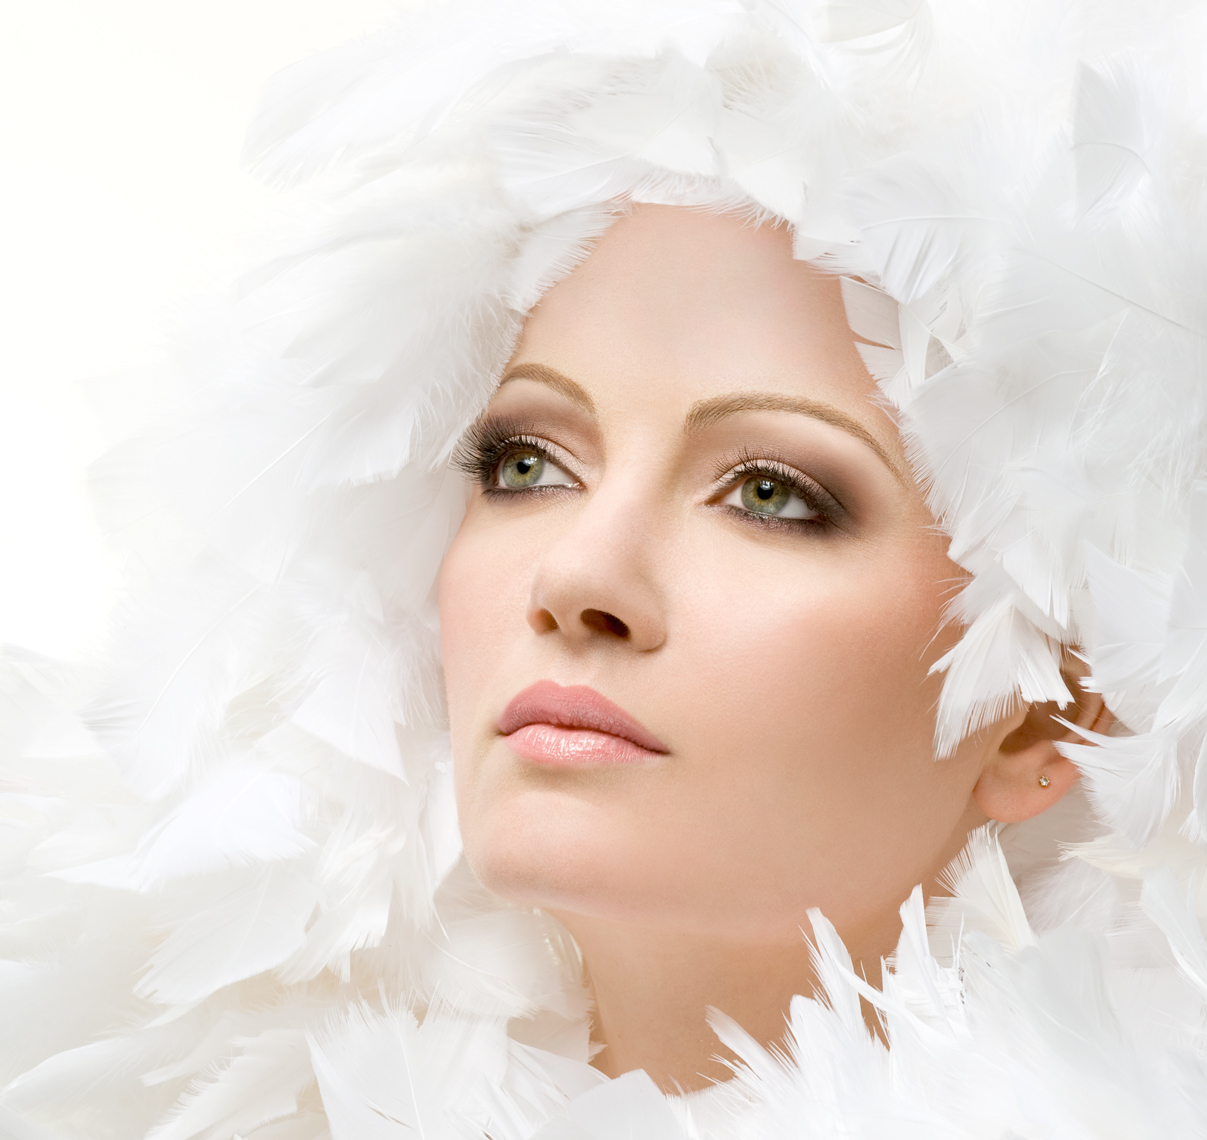 Suse Daisy in Feathers-photographed-by-Joe-Henson-Best-Actors-Headshot-Photographer-NYC-NY-New-York-Washington-DC-Boston-Paris-London-Berlin-Avedon-Penn-Marco-Grob-Annie-Leibovitz-Peter-Hurley-Jordan-Matter-Hasselblad